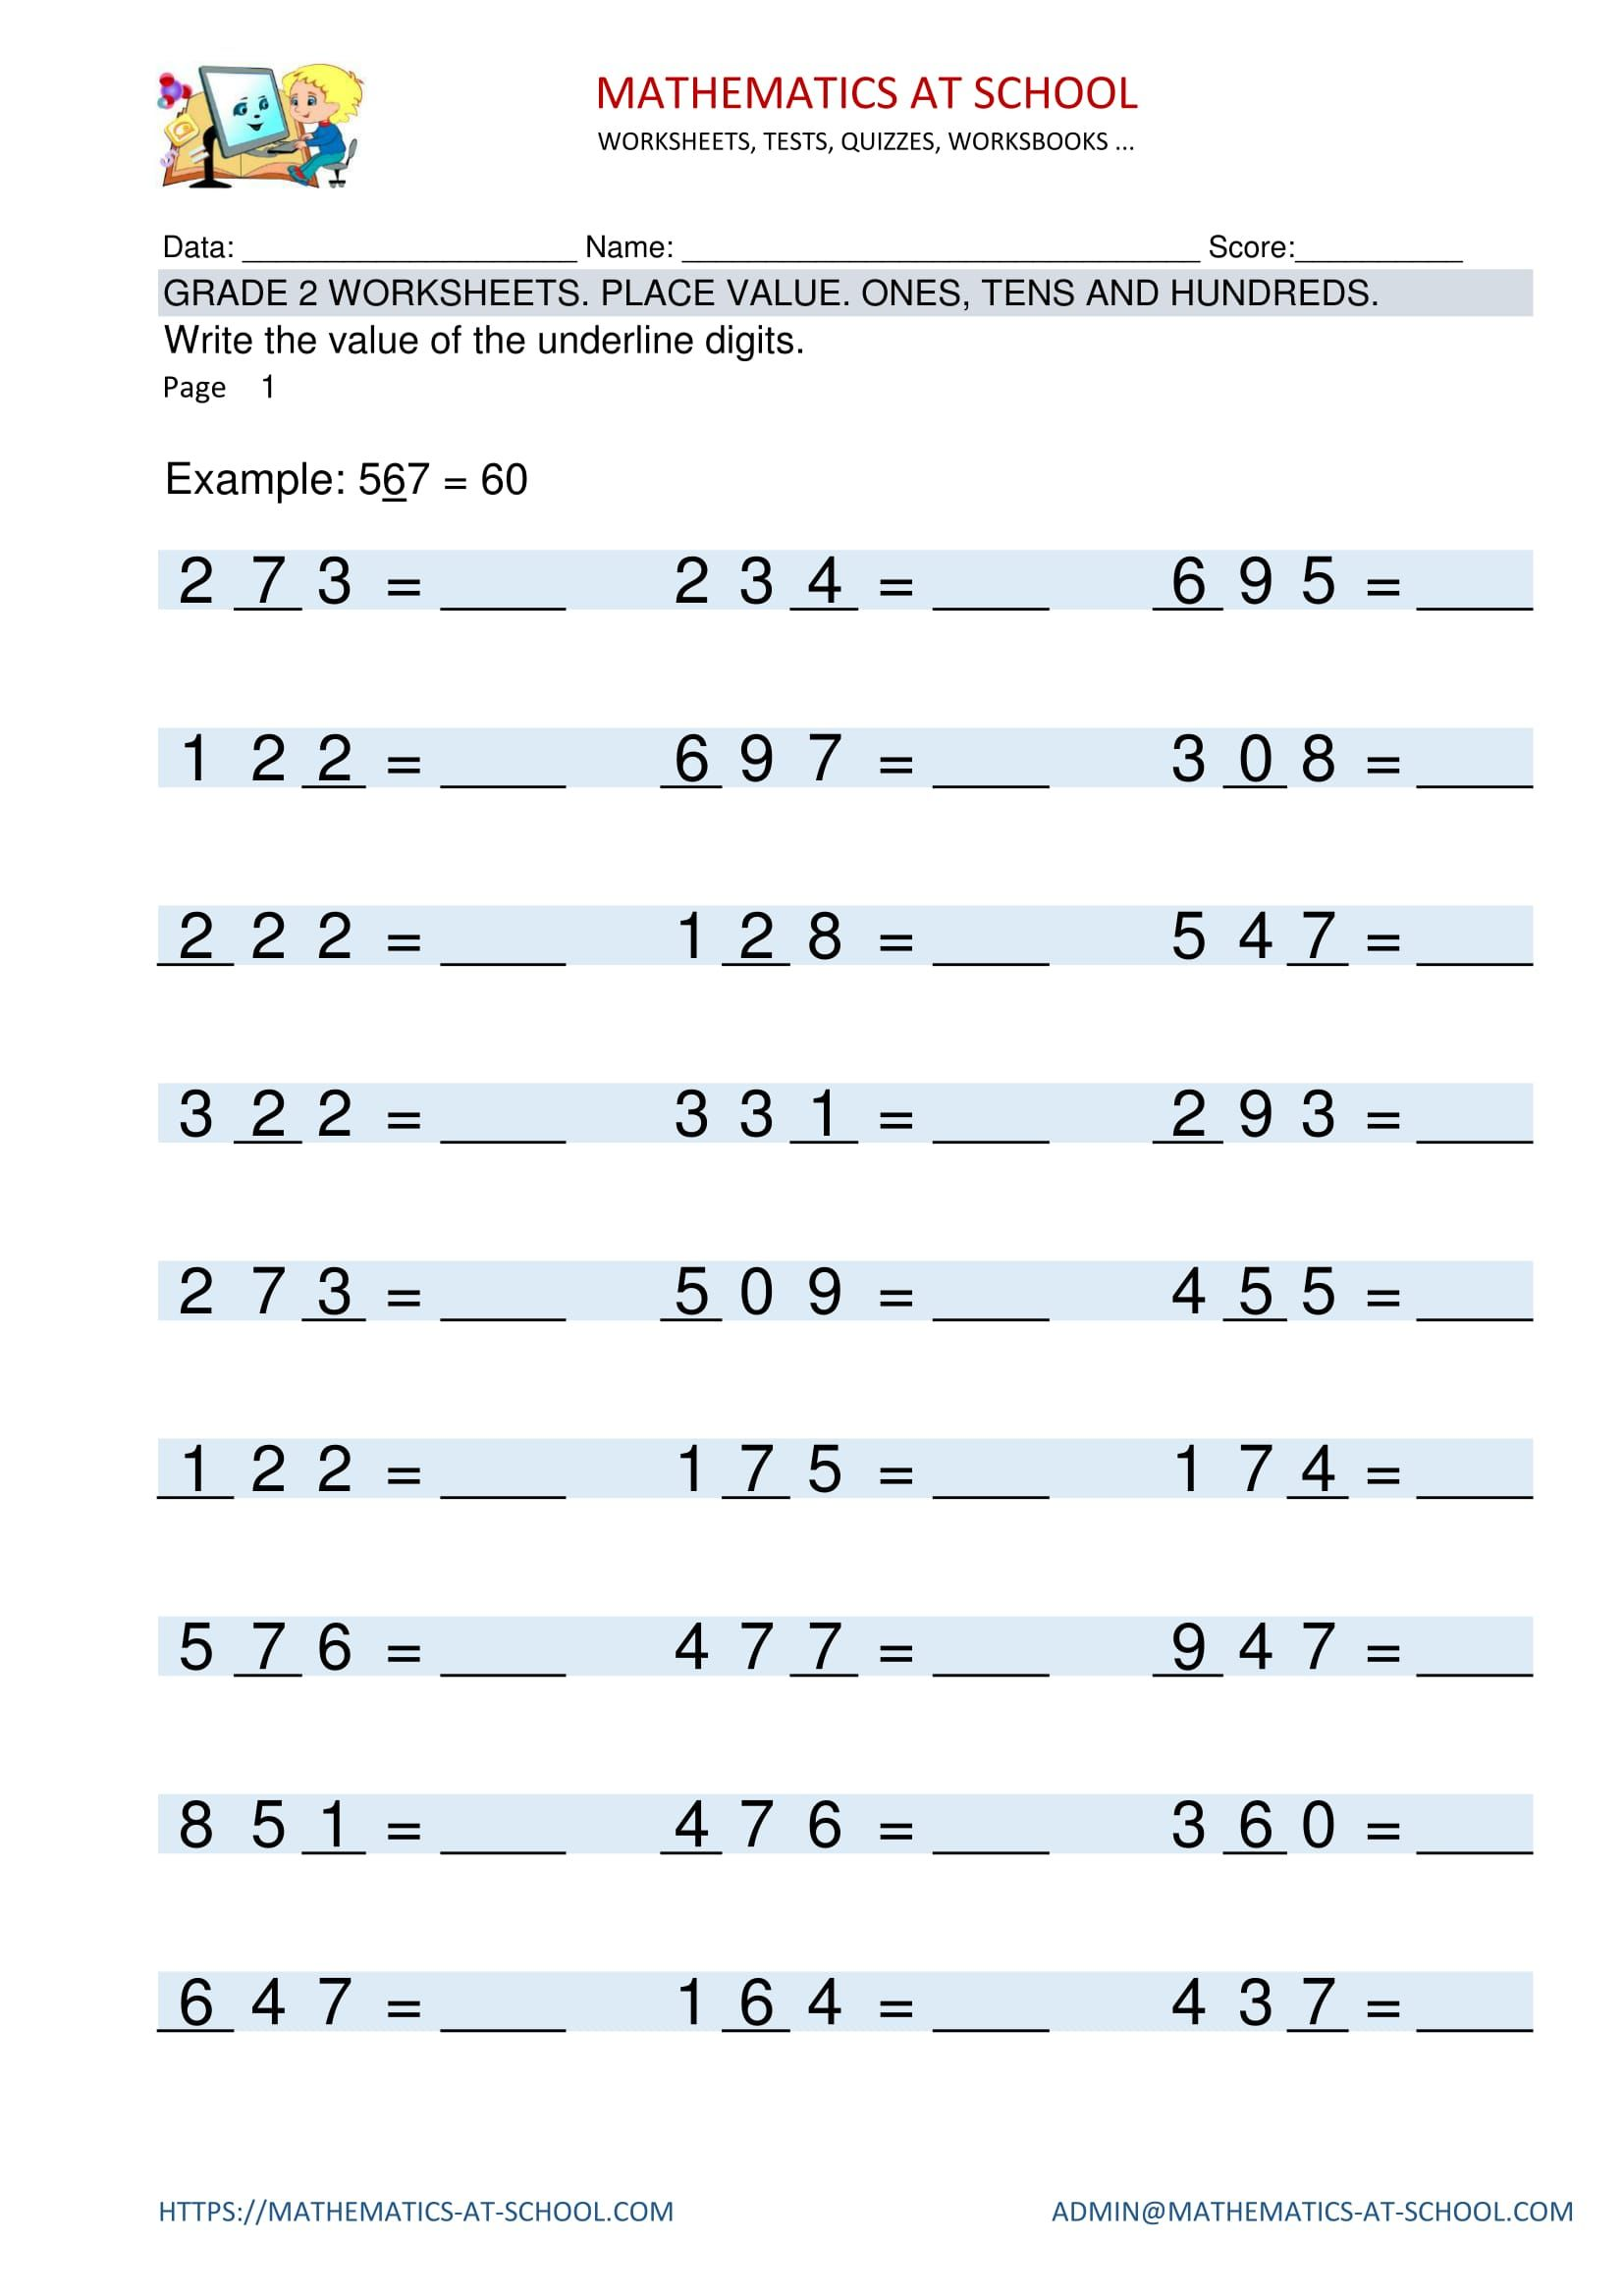 GRADE 2 WORKSHEETS Place value Place value of digits